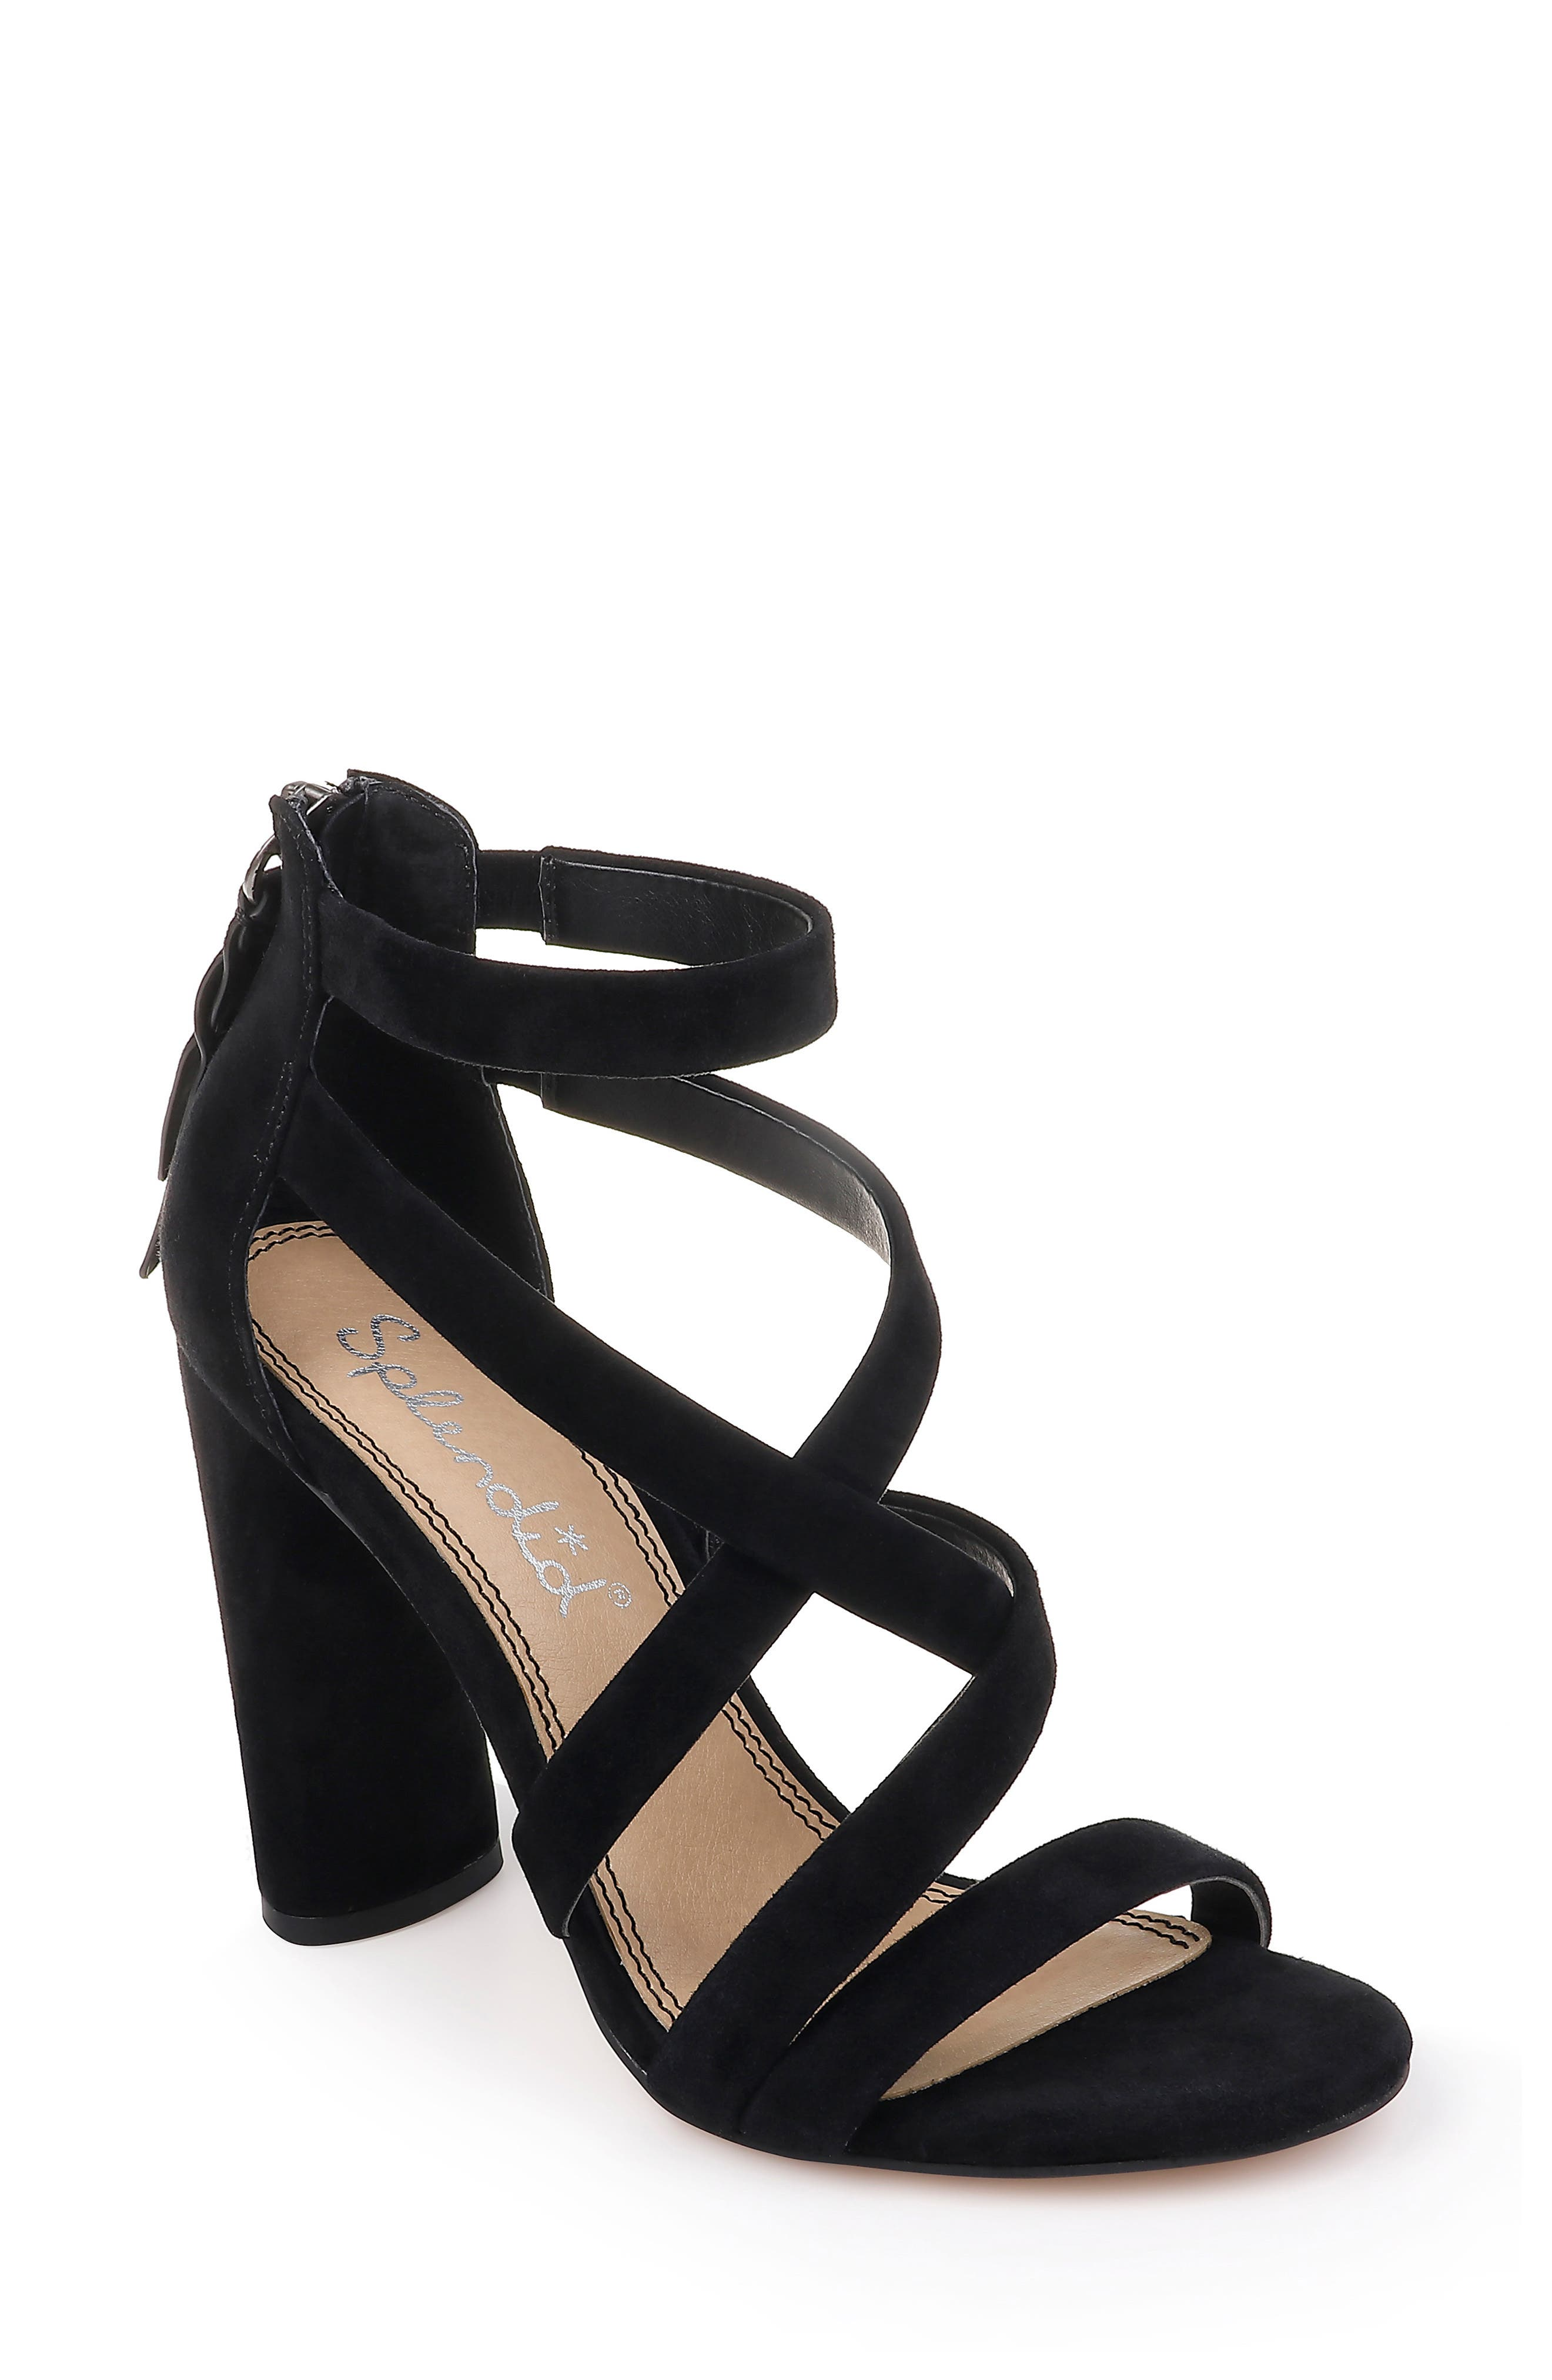 Stuart Block Heel Sandal,                             Main thumbnail 1, color,                             BLACK SUEDE